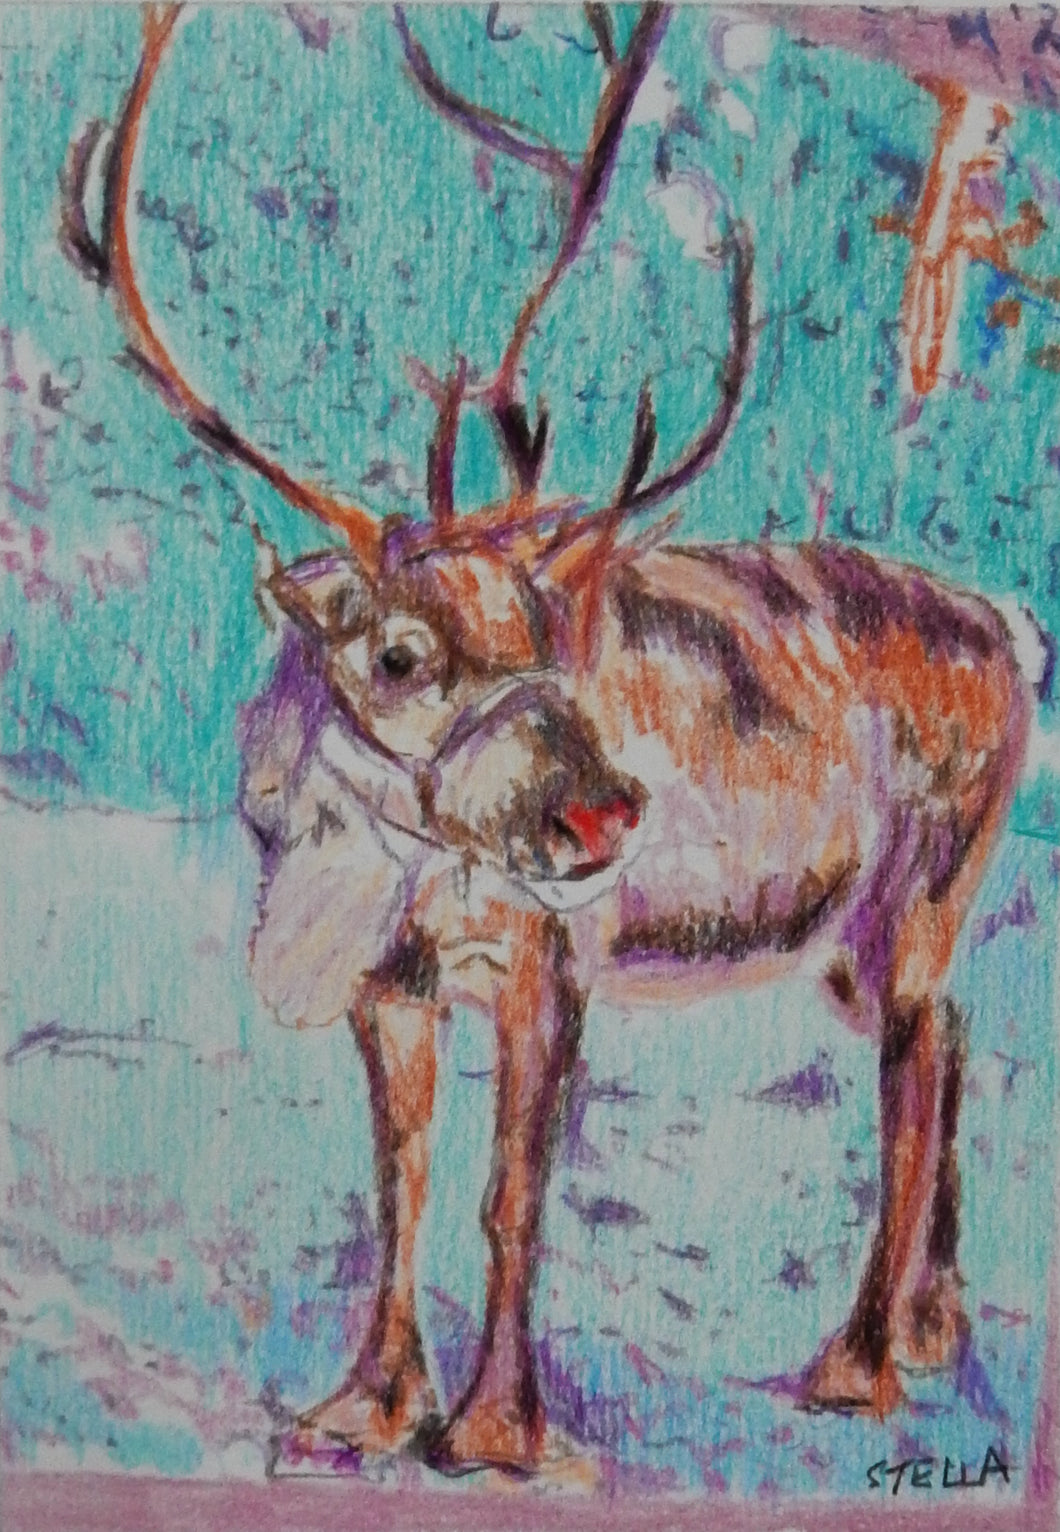 Rudolph the red nosed reindeer pencil on paper artwork by Stella Tooth